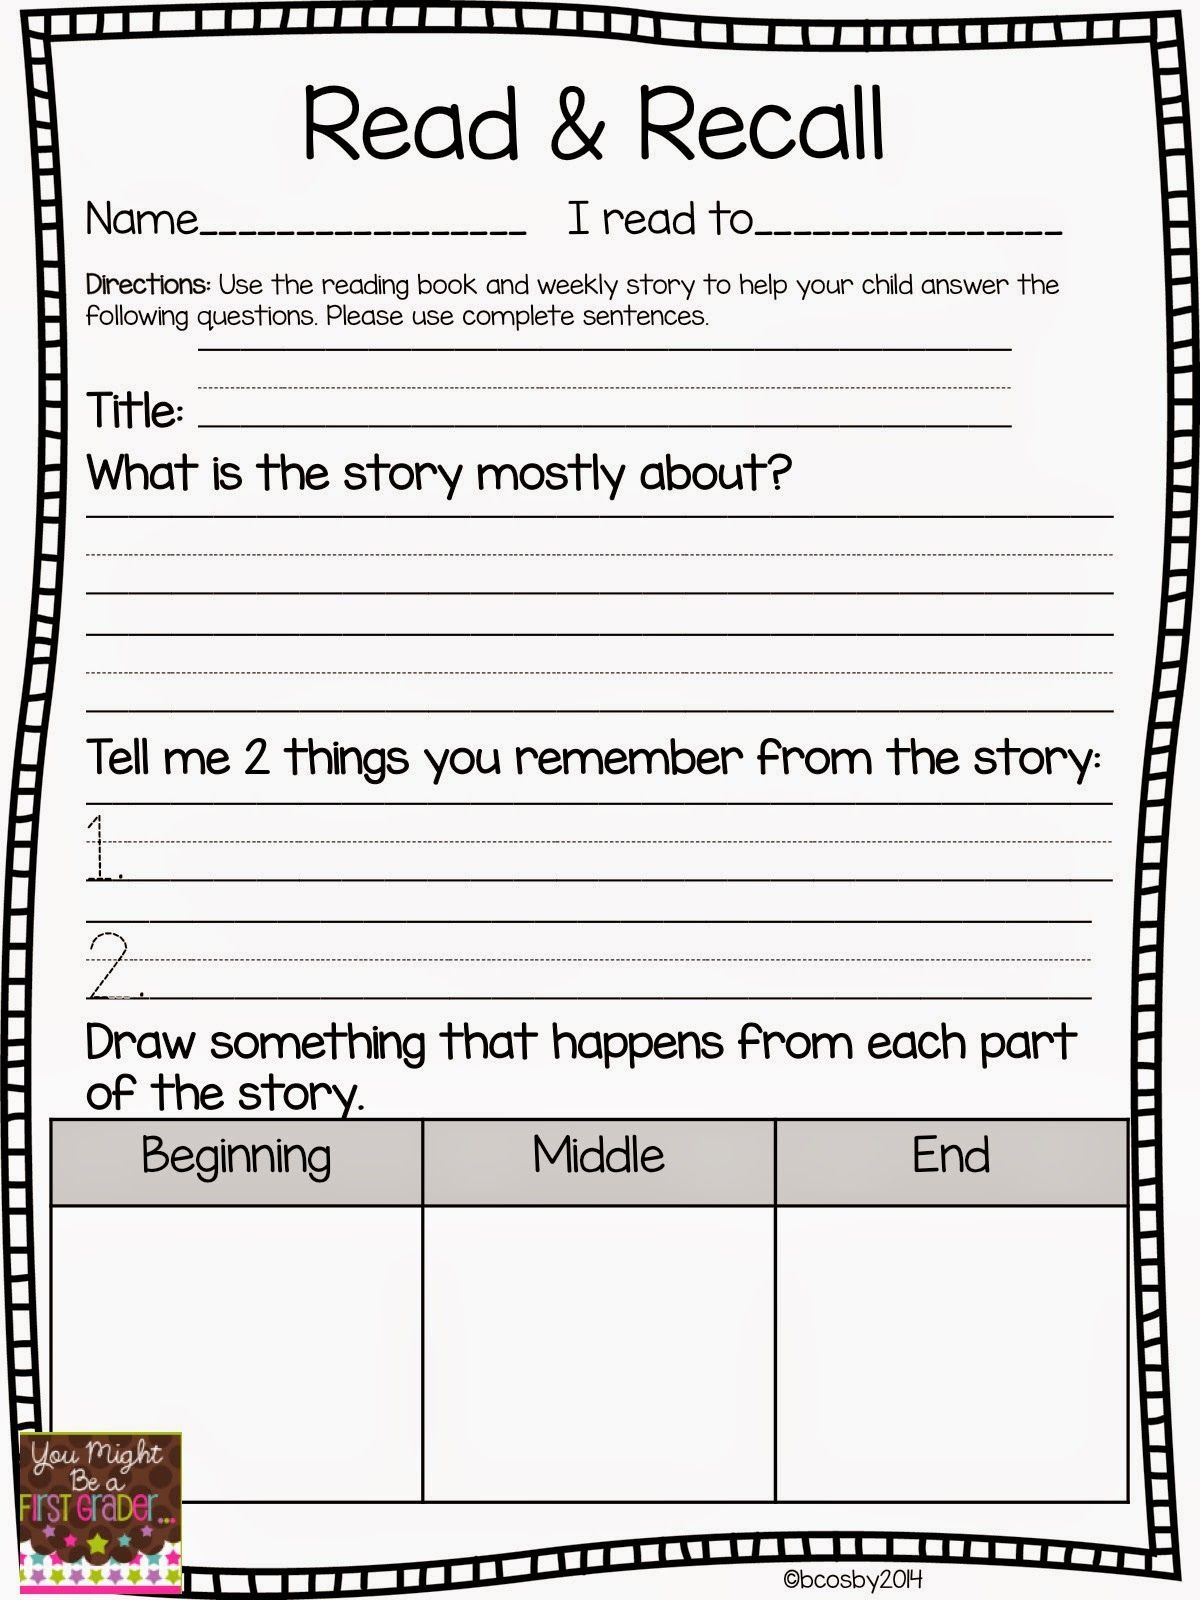 Worksheet : Primary Four Math Year Science Worksheets Mental - Free Printable Science Worksheets For 2Nd Grade